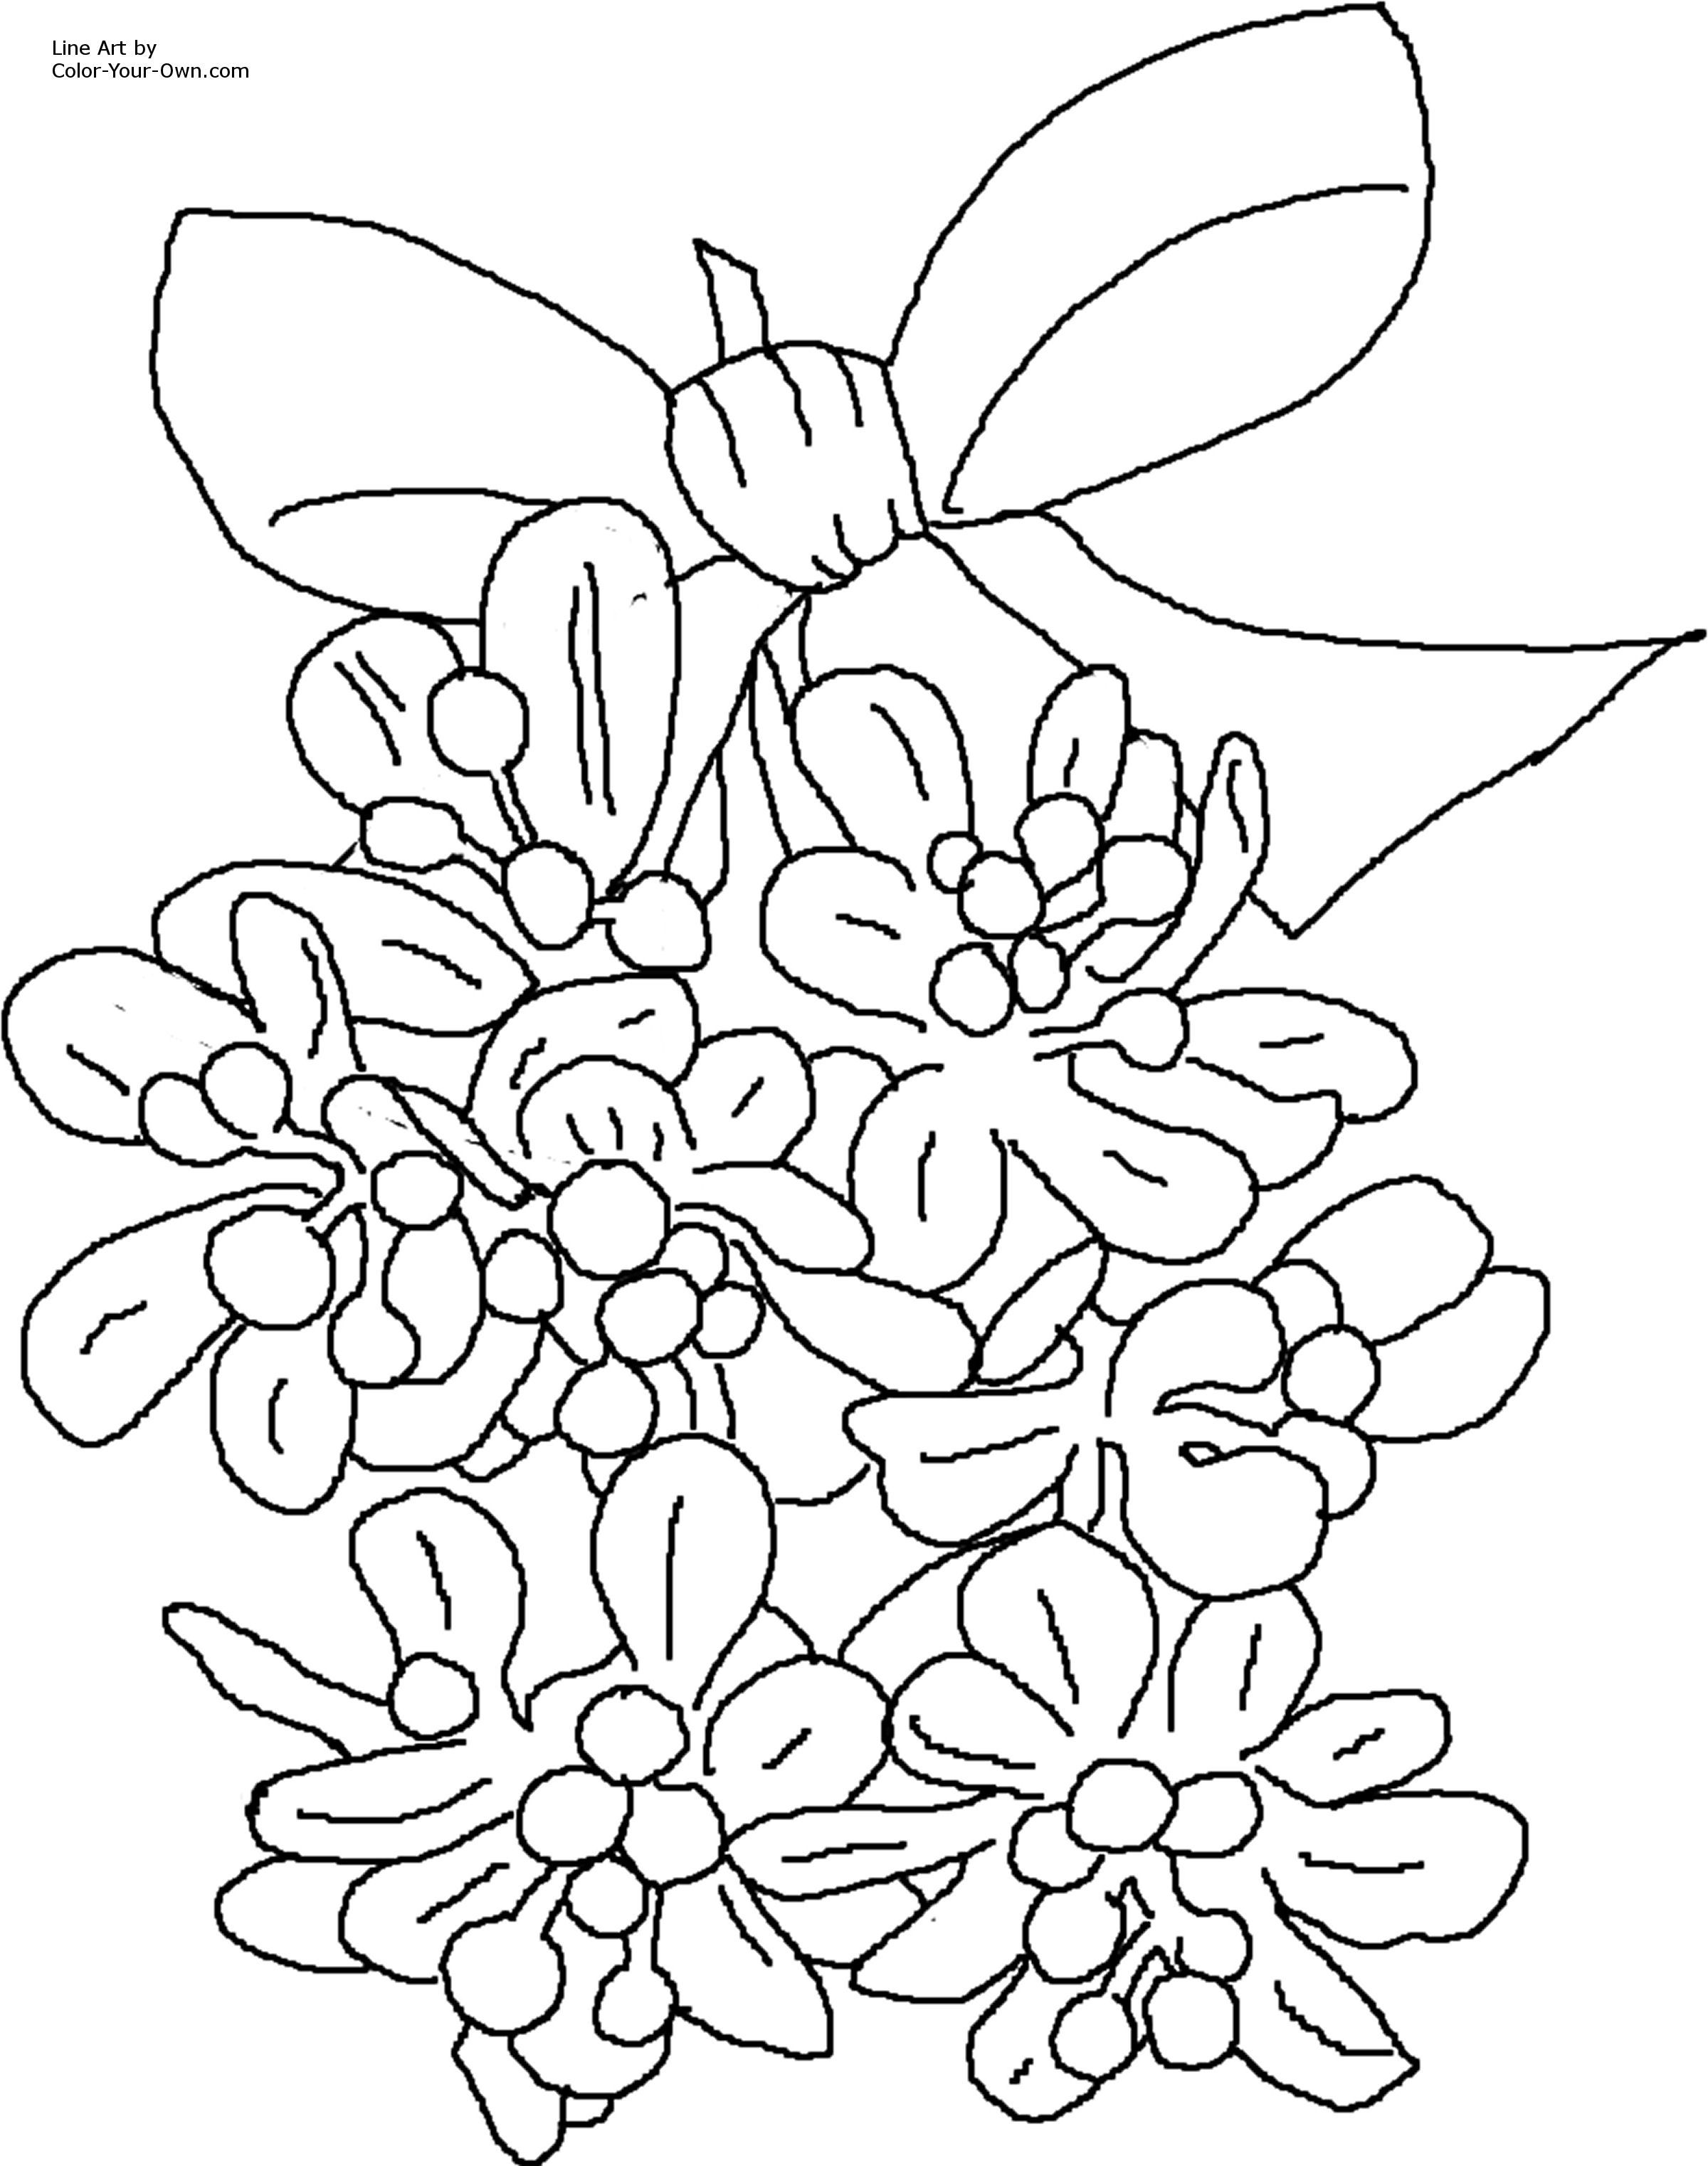 christmas coloring pages christmas mistletoe coloring page - Mistletoe Coloring Pages